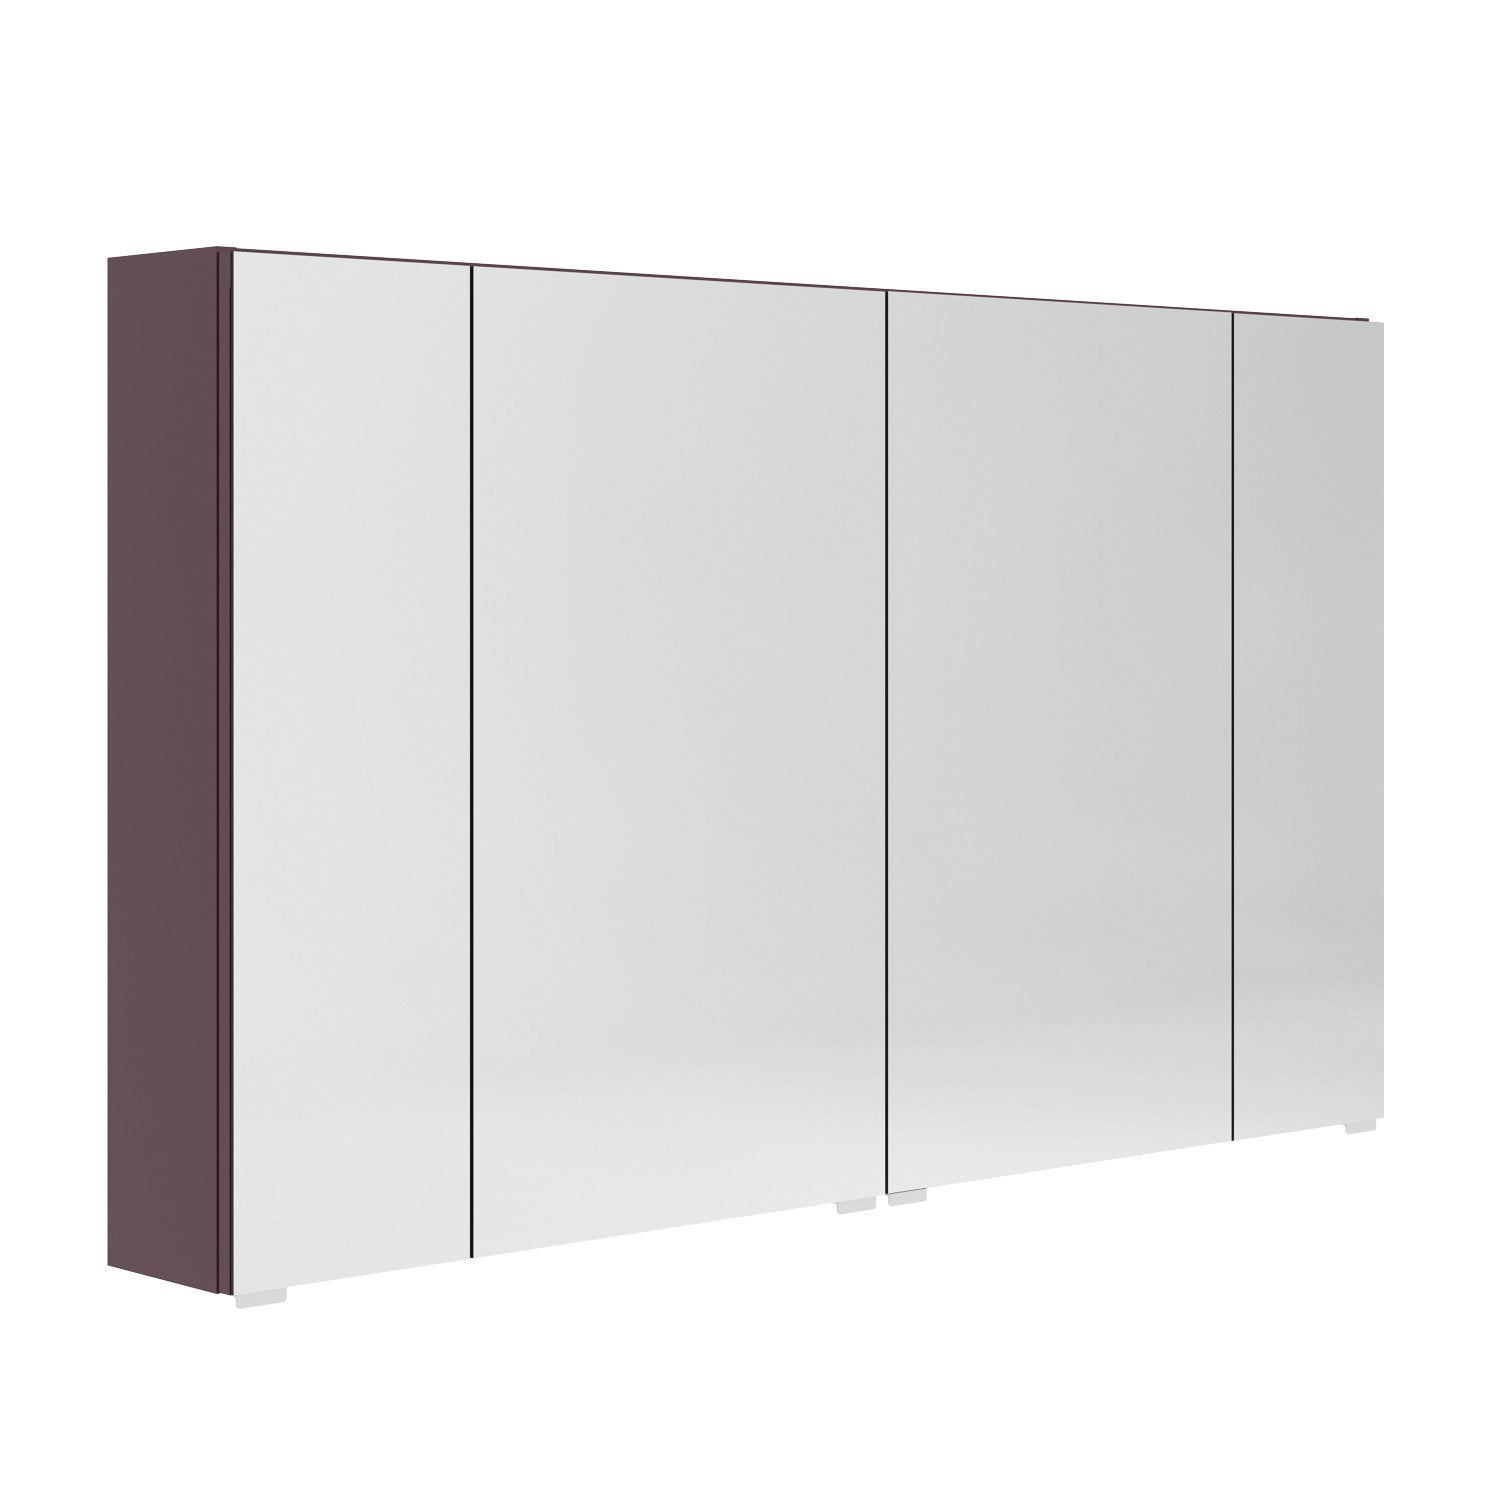 armoire de toilette l 120 cm aubergine opale leroy merlin. Black Bedroom Furniture Sets. Home Design Ideas